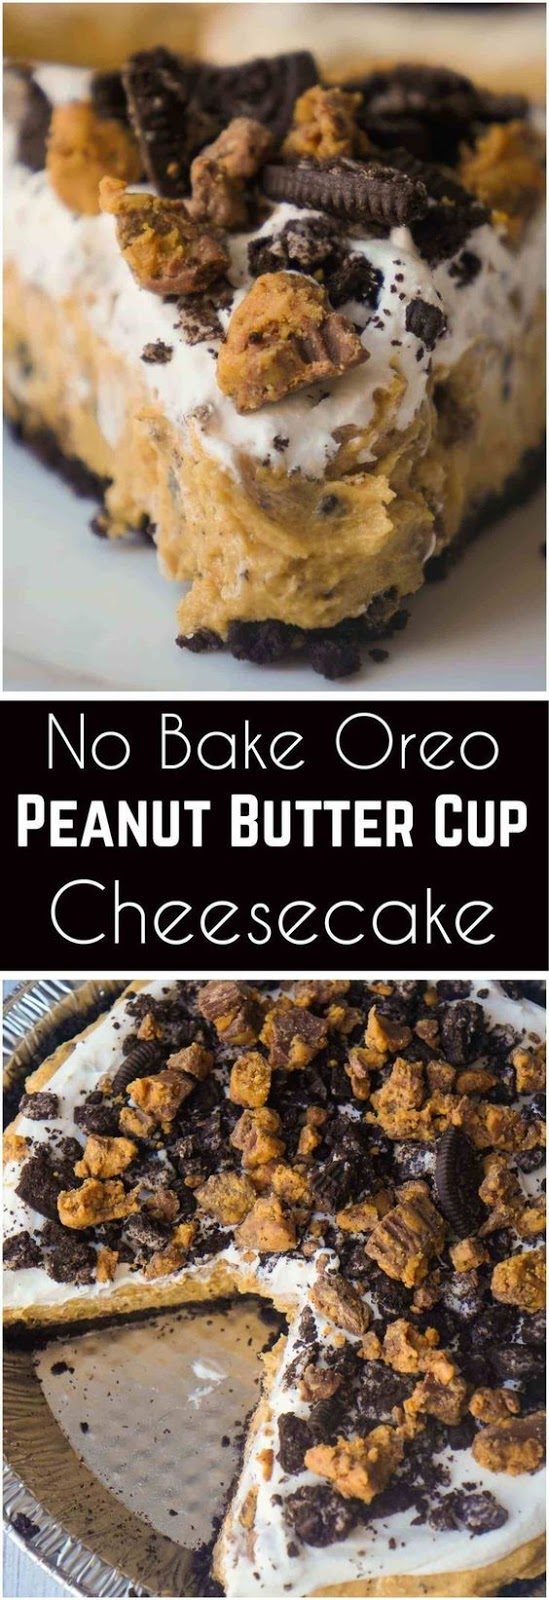 No Bake Oreo Peanut Butter Cup Cheesecake